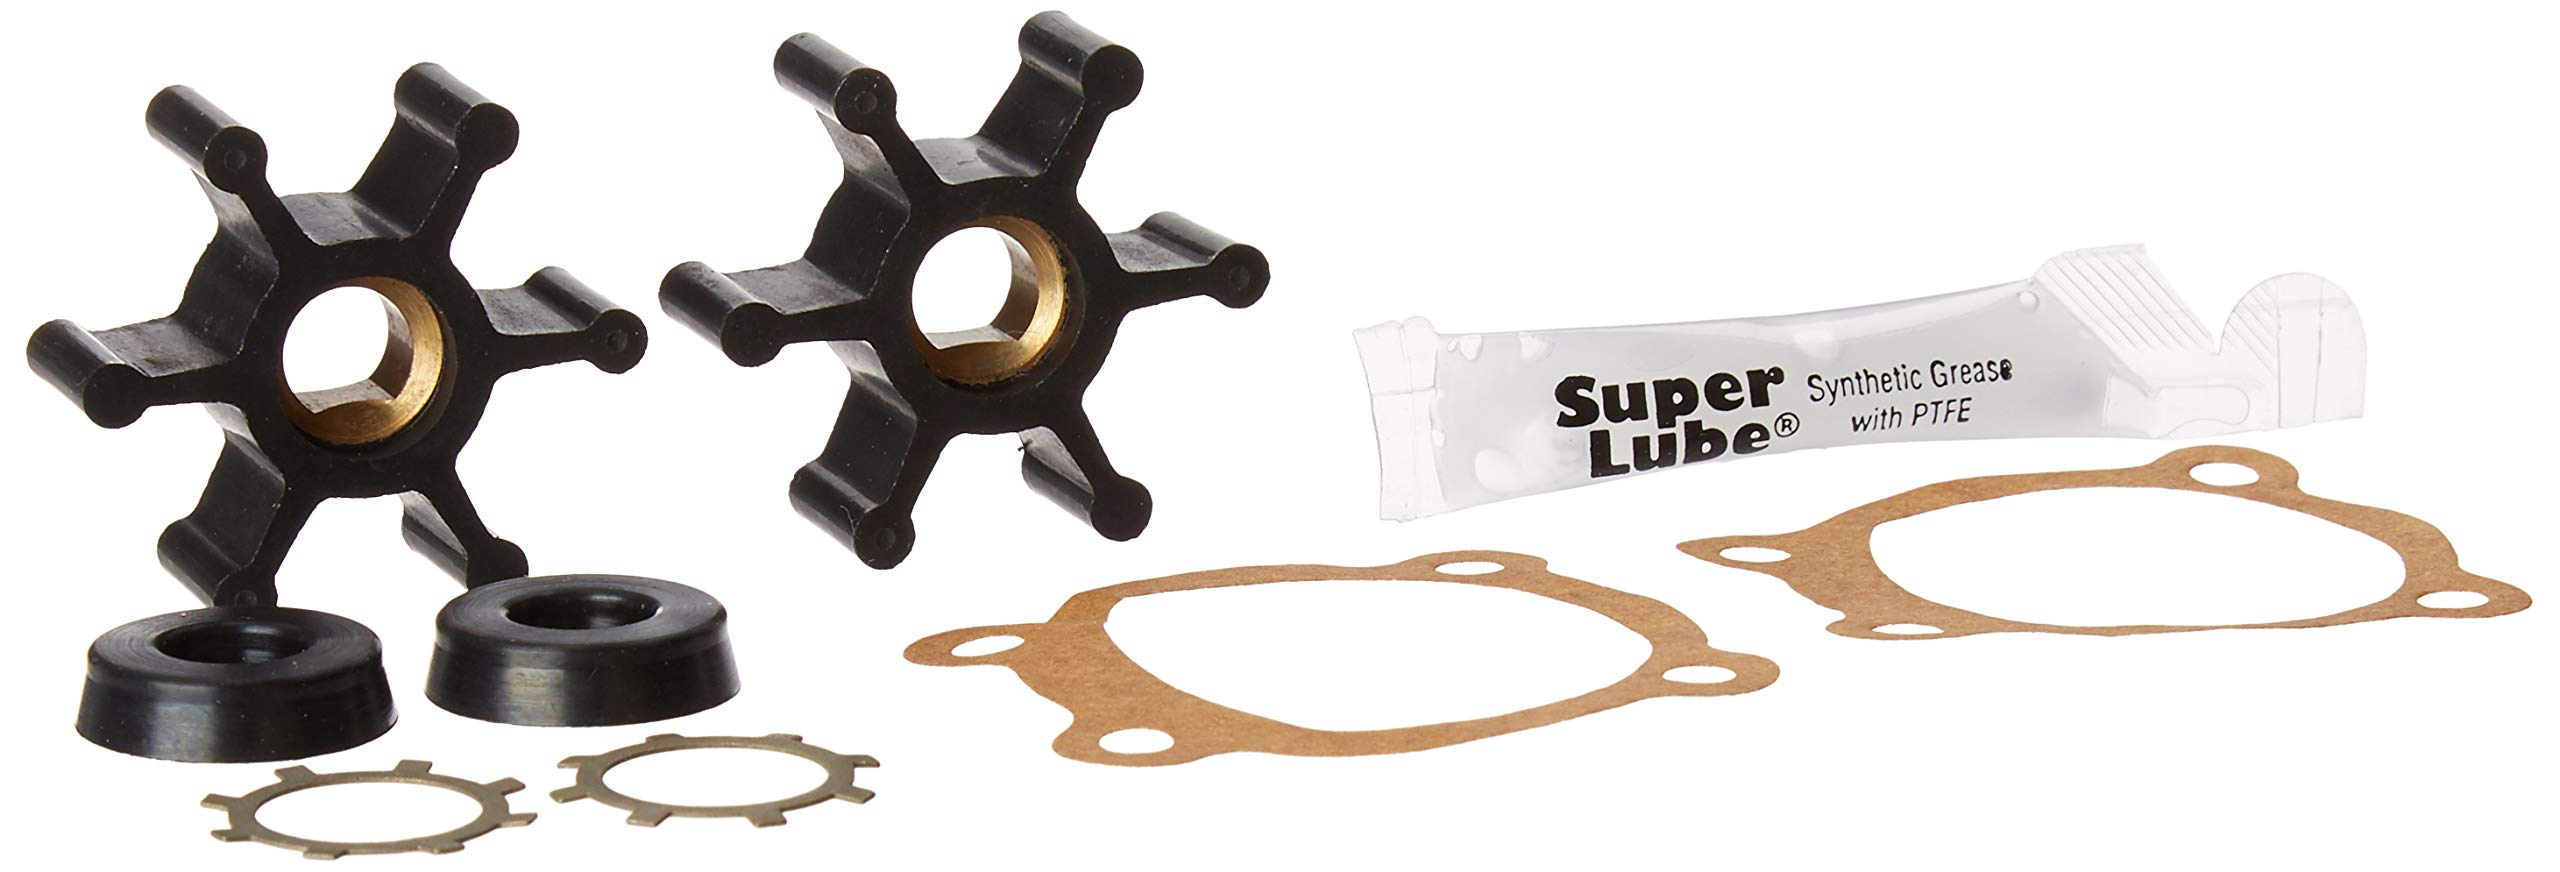 REPLACEMENTKITS.COM - Utility Water Transfer Pump Impeller Replacement Kit - by REPLACEMENTKITS.COM